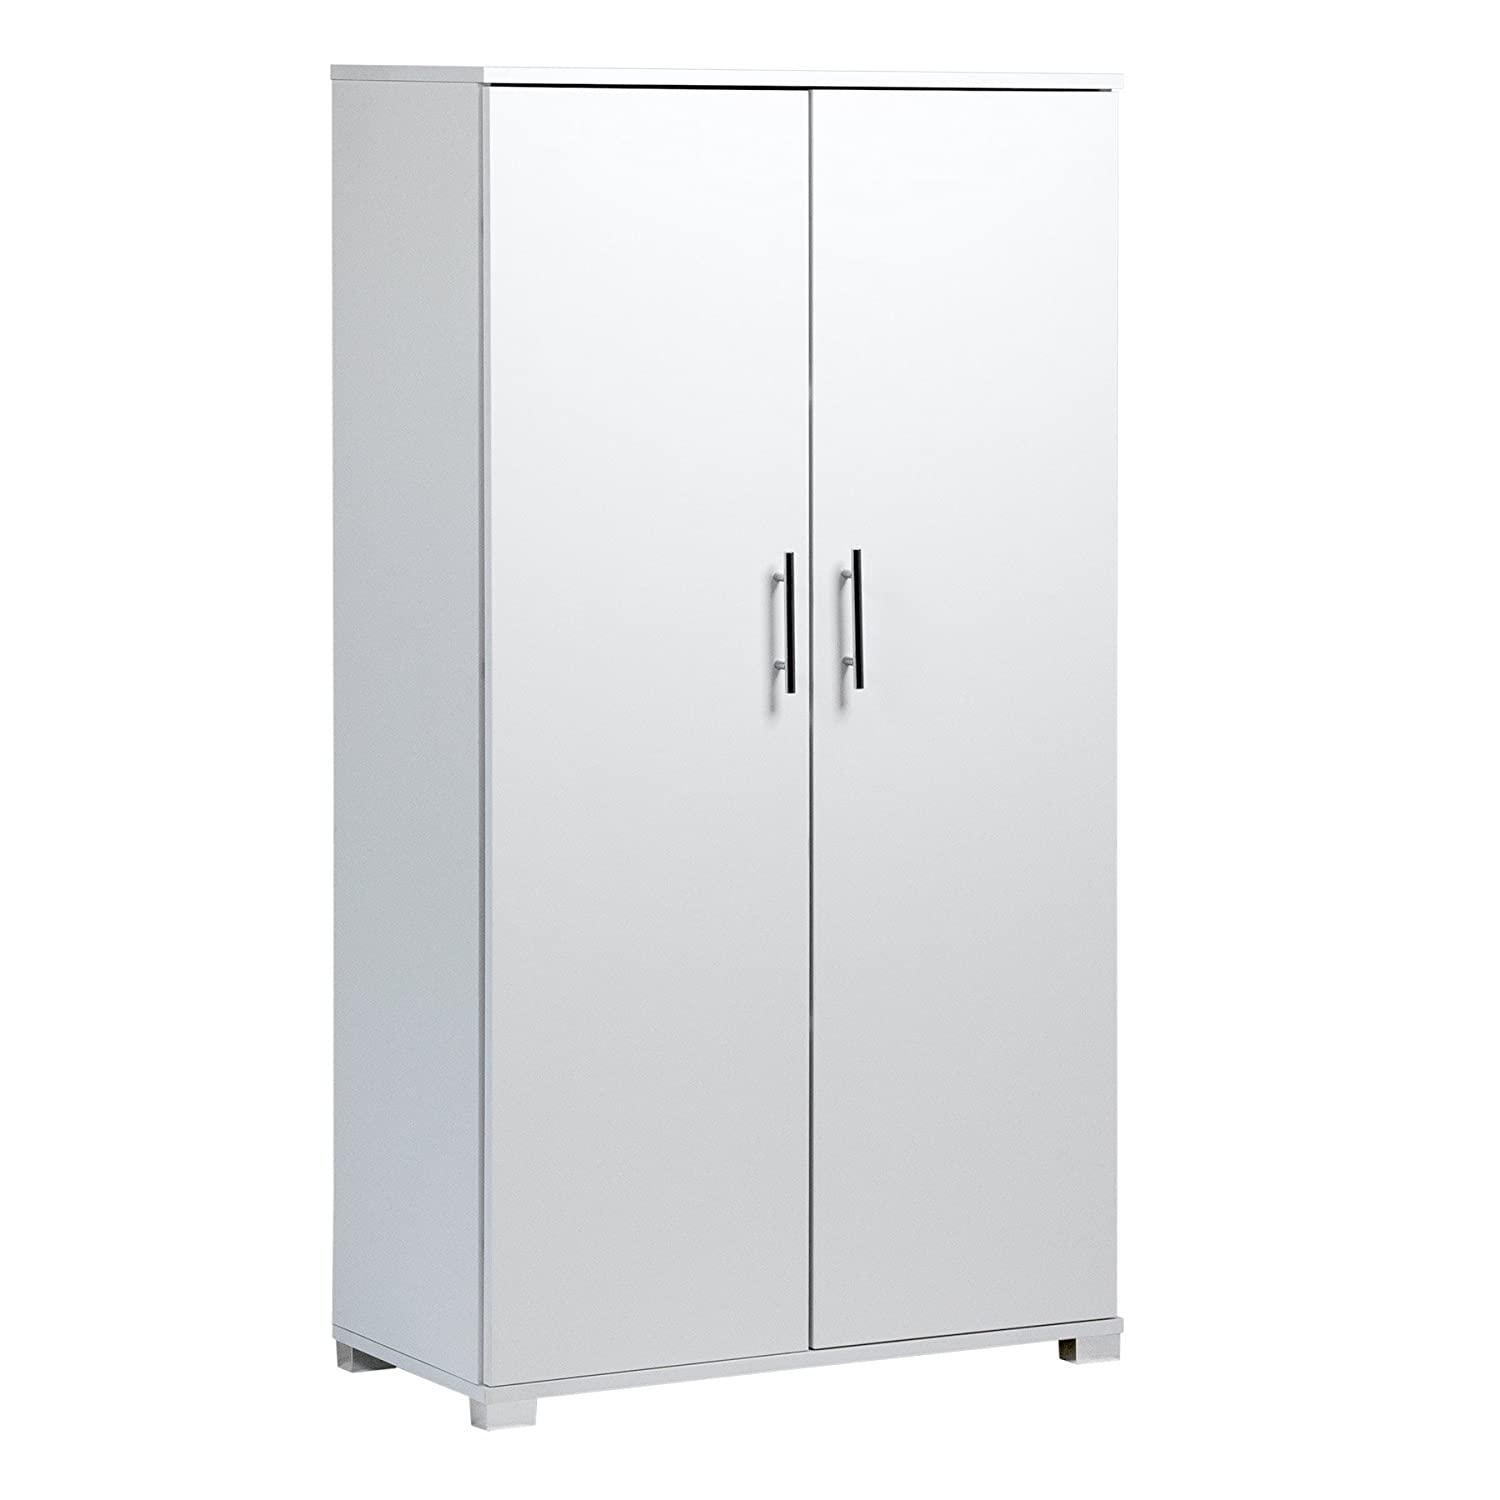 White Office Cupboard Filing Storage Stationary Cabinet - Office Furniture, 4 Storage Shelves - 2 Door Cabinet - 800mm Wide - Massive Storage Capacity - 40 x A4 Box File Capacity MMT